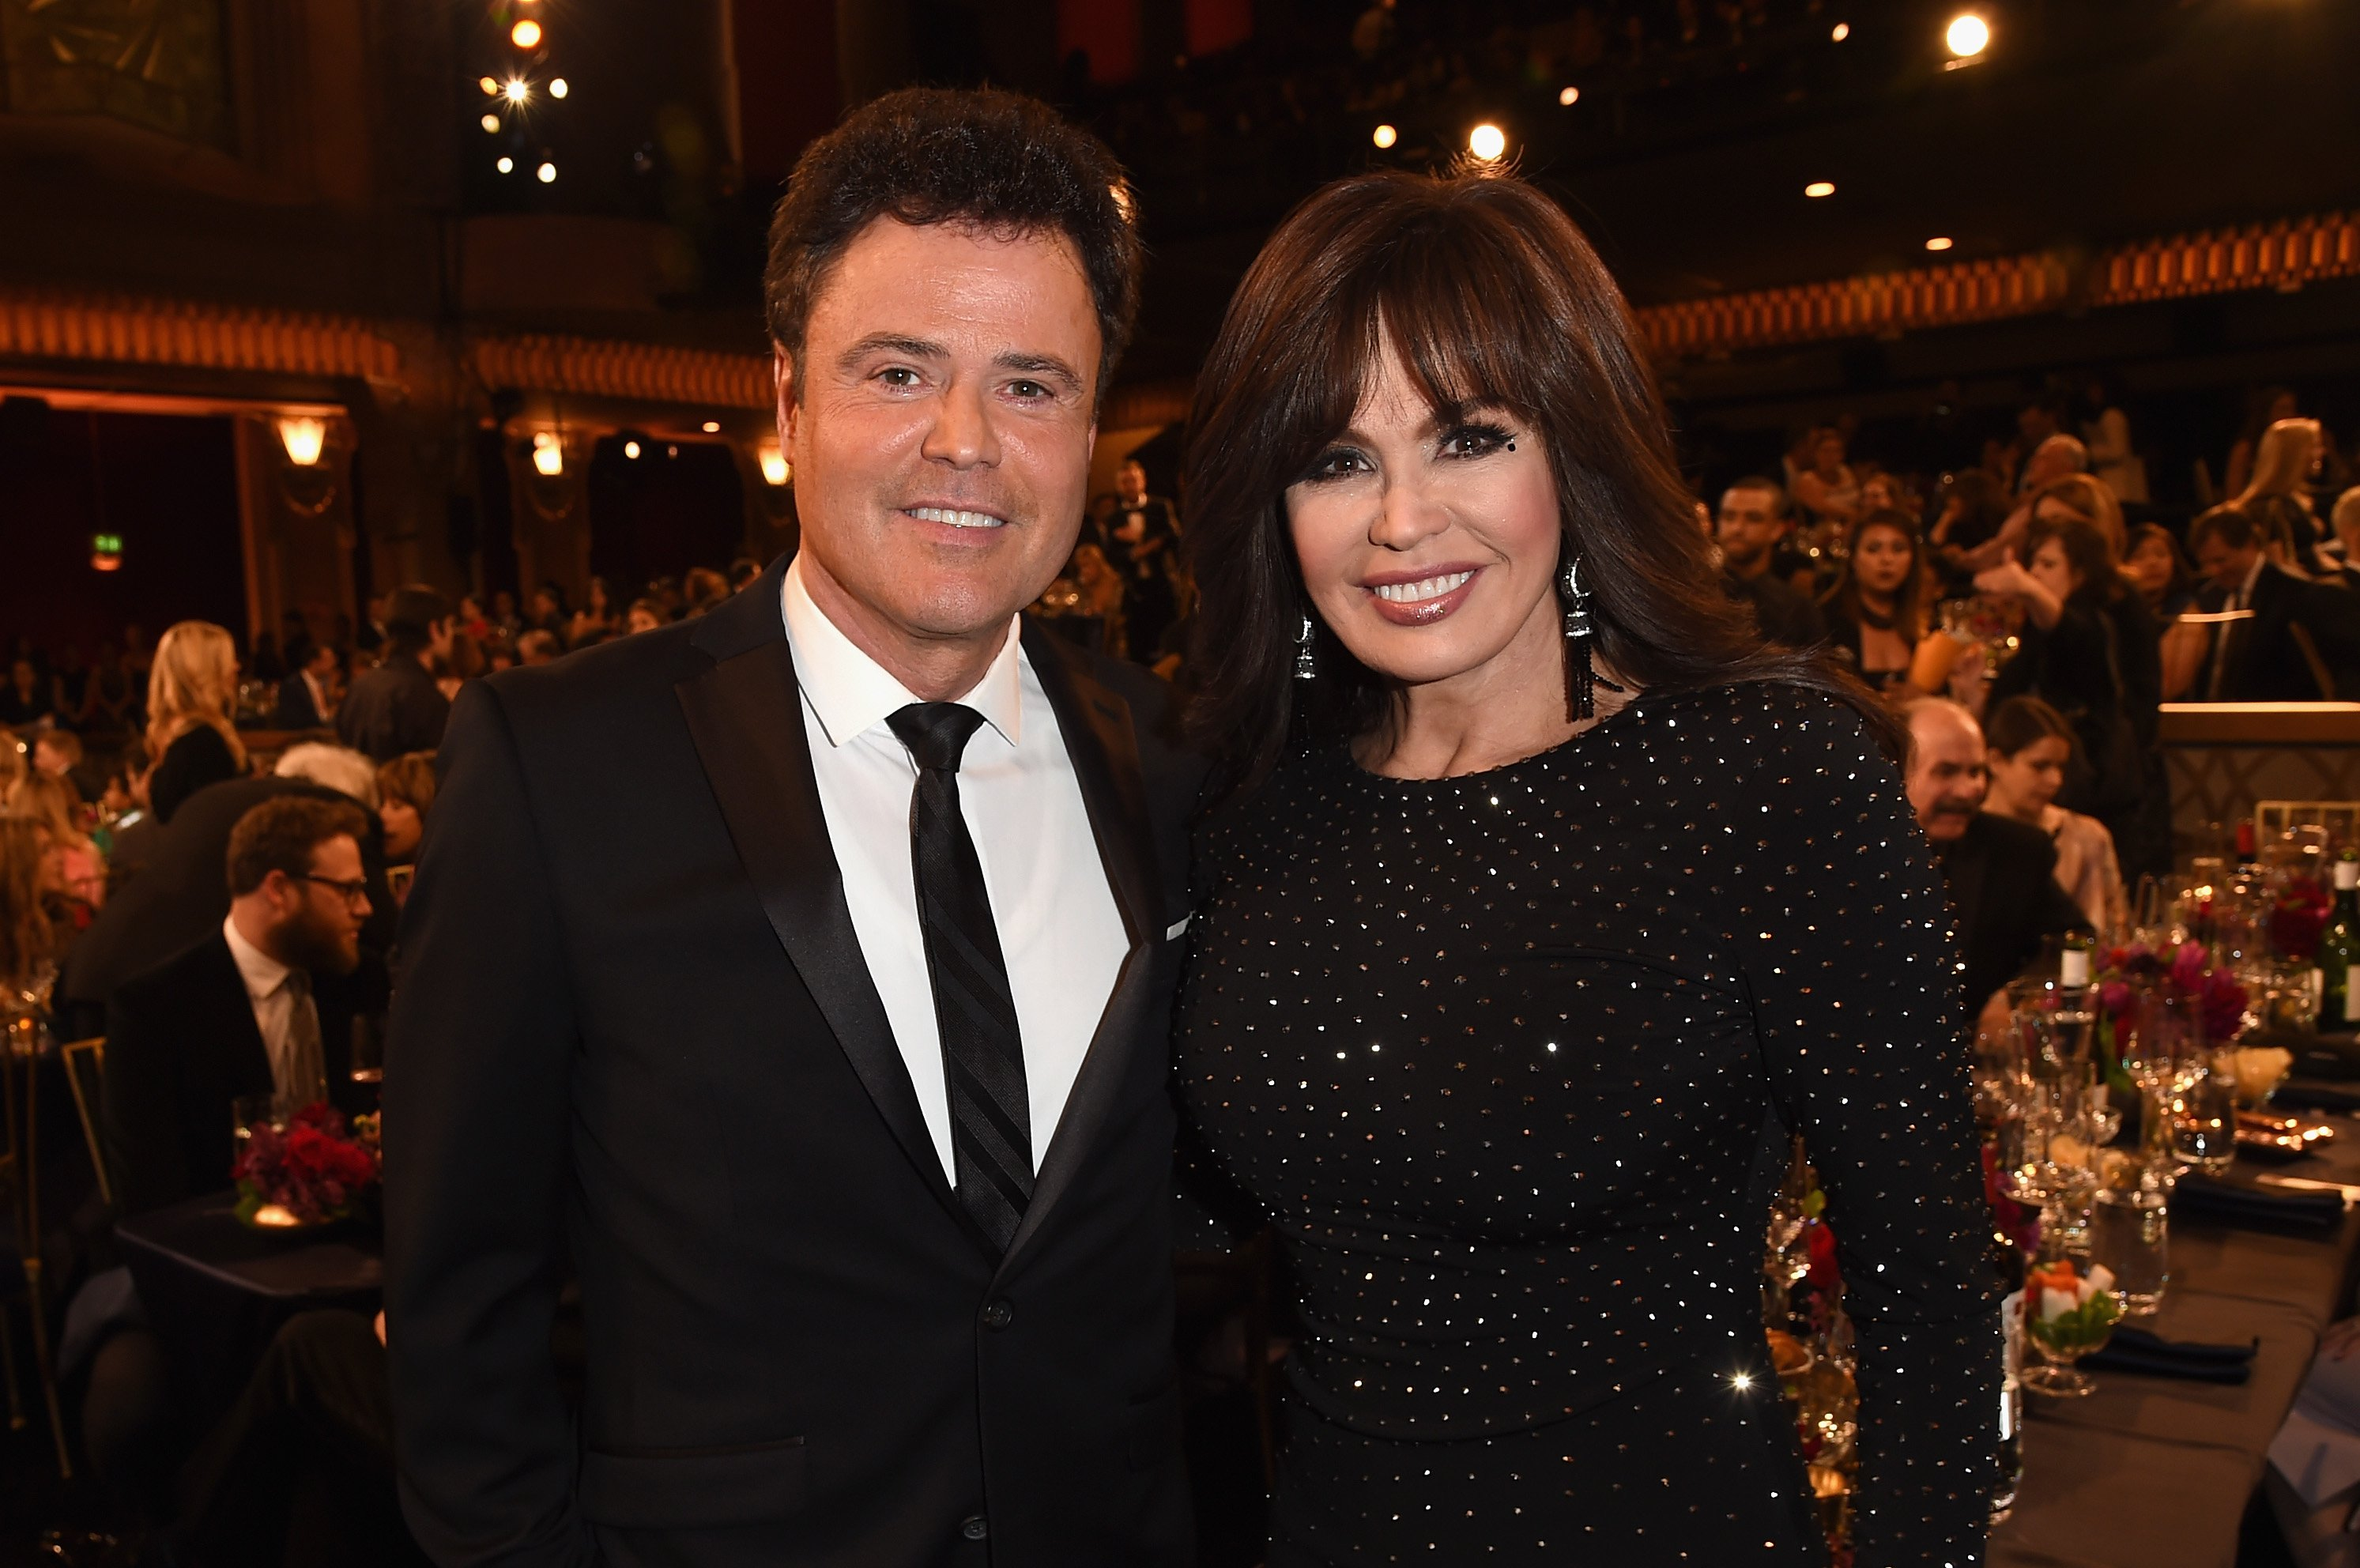 Donny Osmond and Marie Osmond attend the TV Land Awards on April 11, 2015, in Beverly Hills, California. | Source: Getty Images.